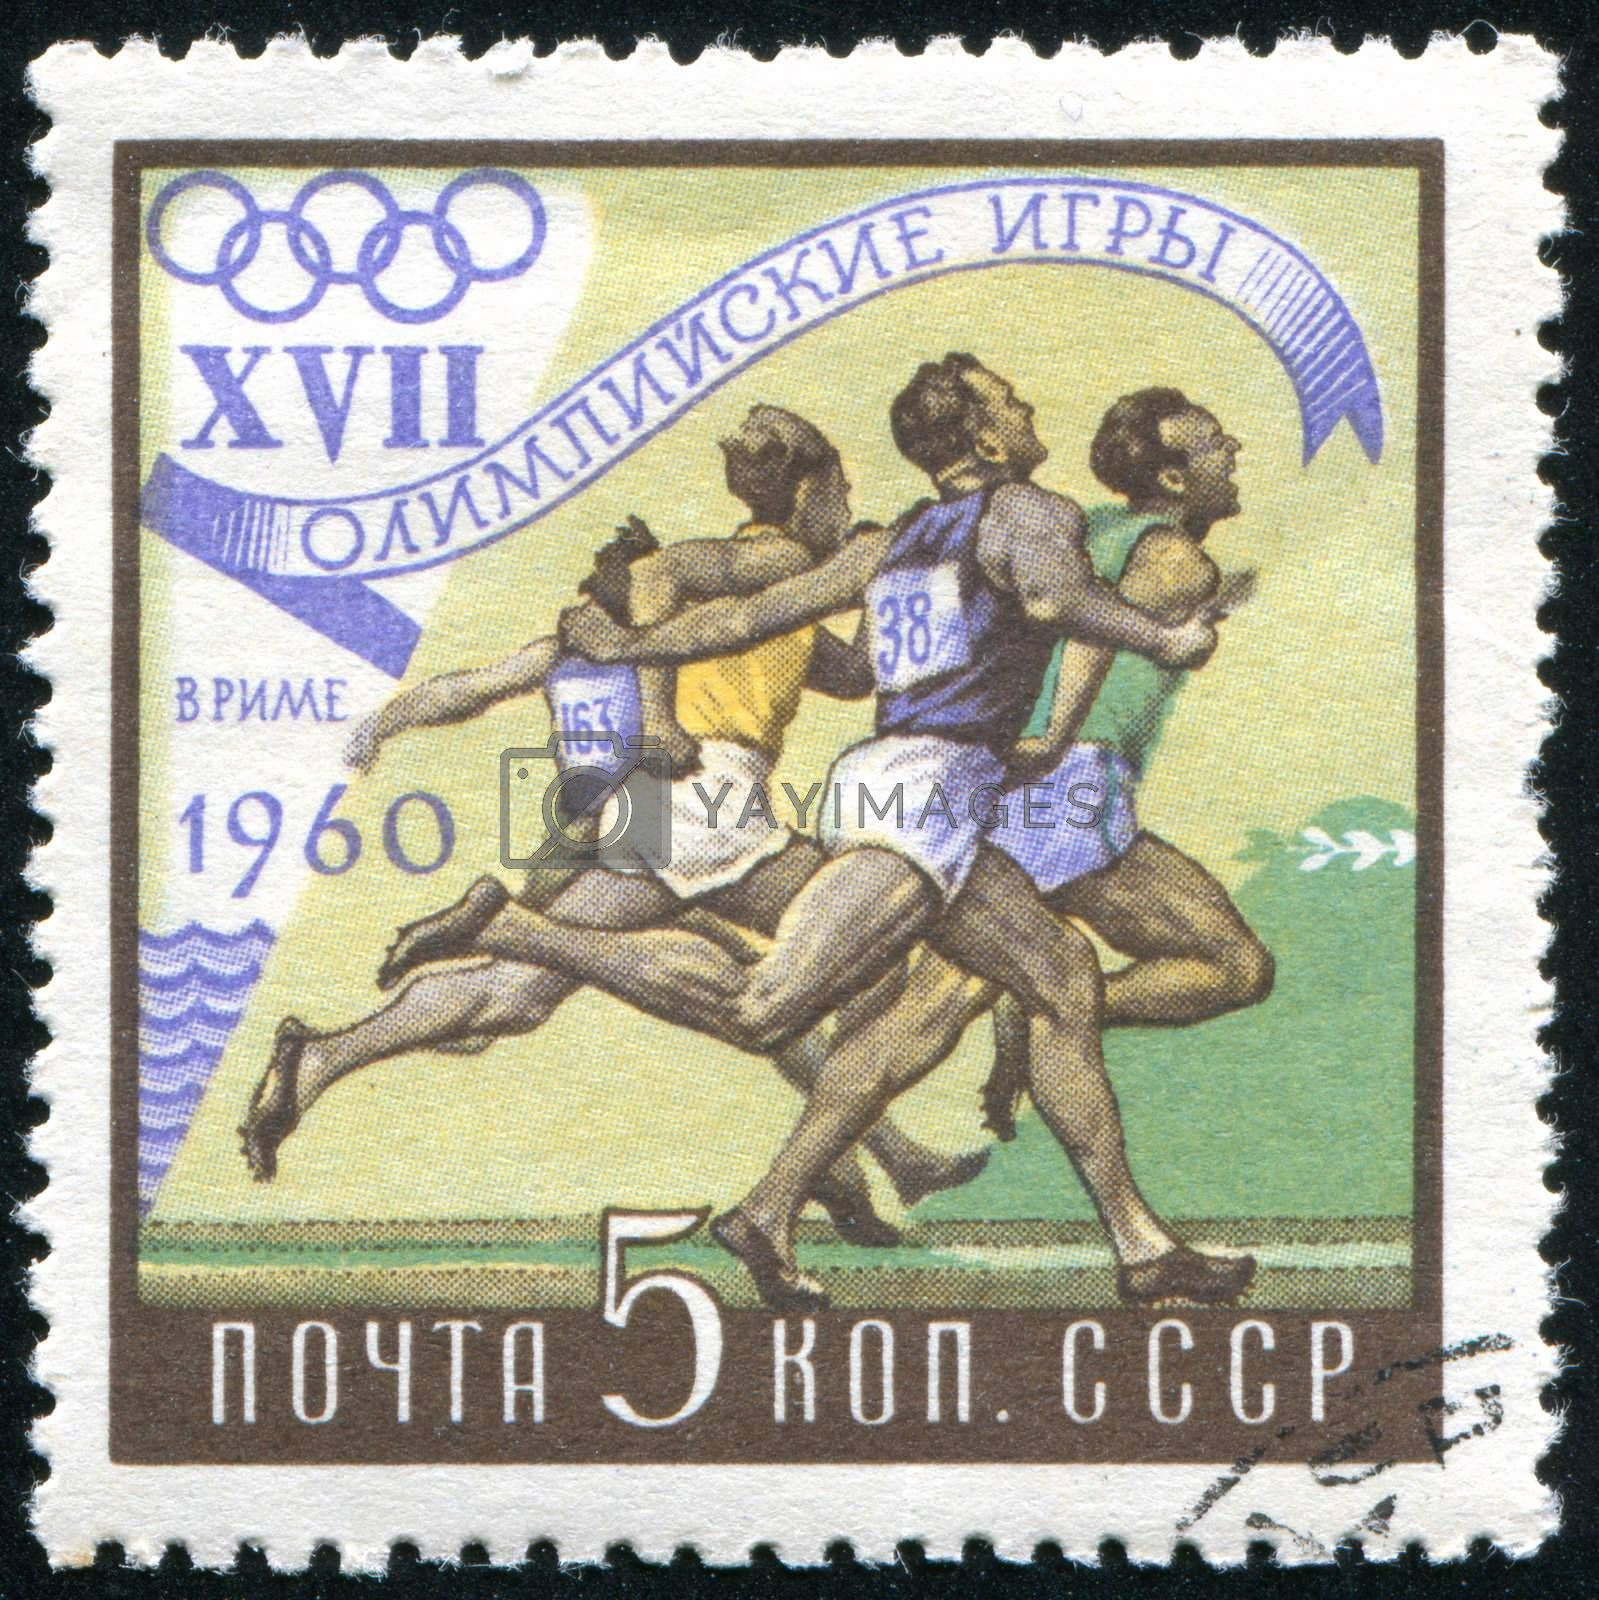 RUSSIA - CIRCA 1960: stamp printed by Russia, shows Running, circa 1960.